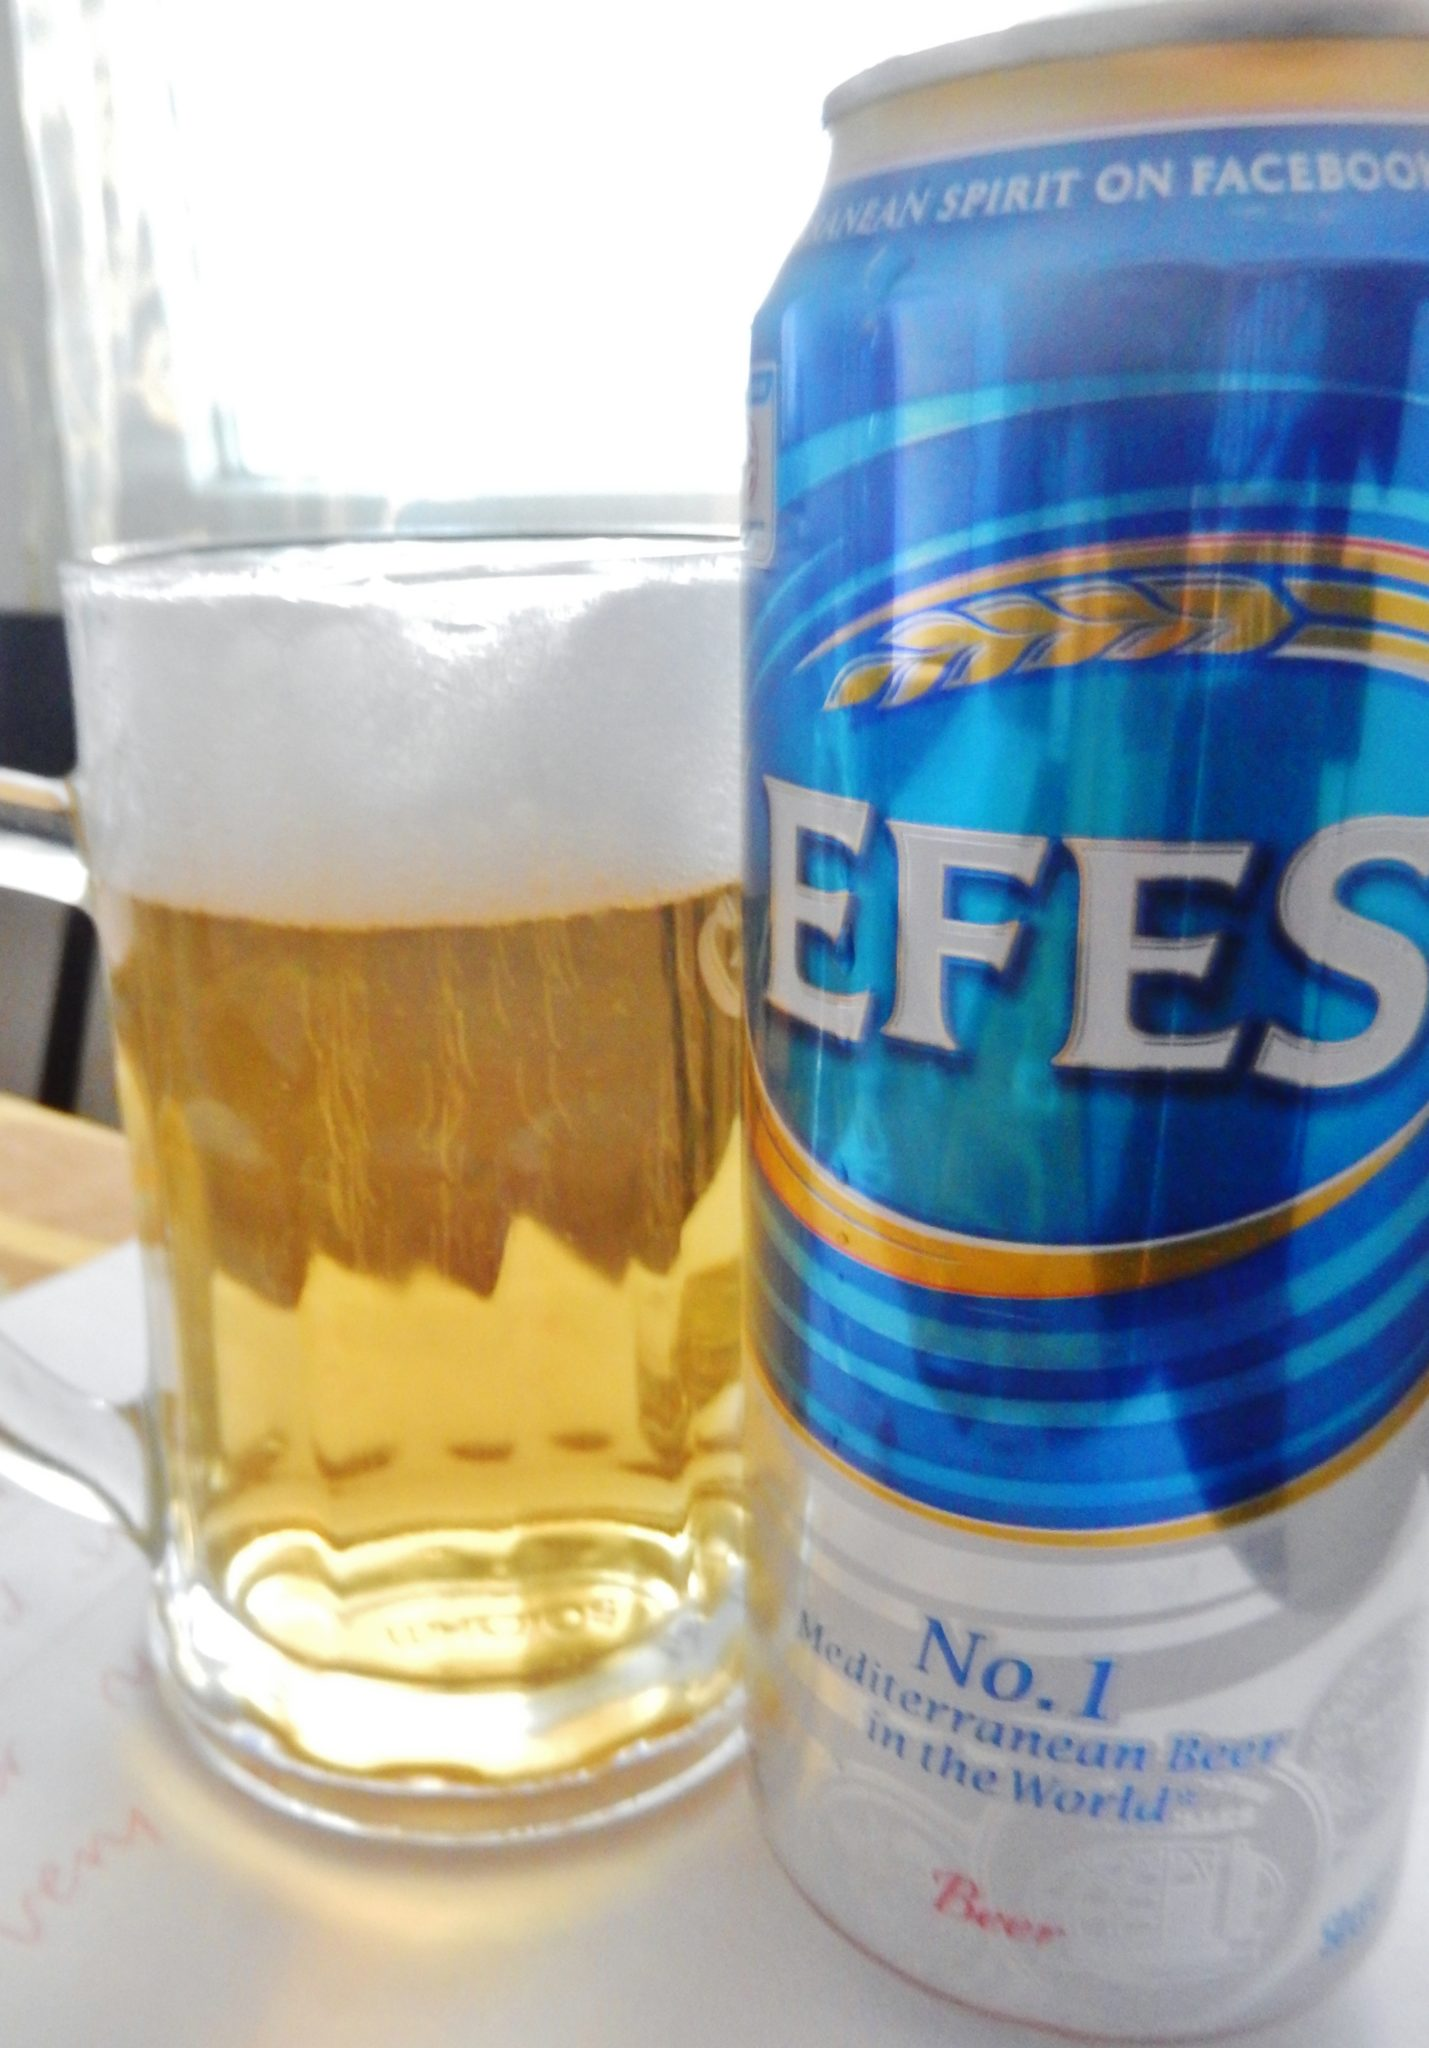 Efes Pilsen, Turkish delight. The number one Mediterranean beer in the world